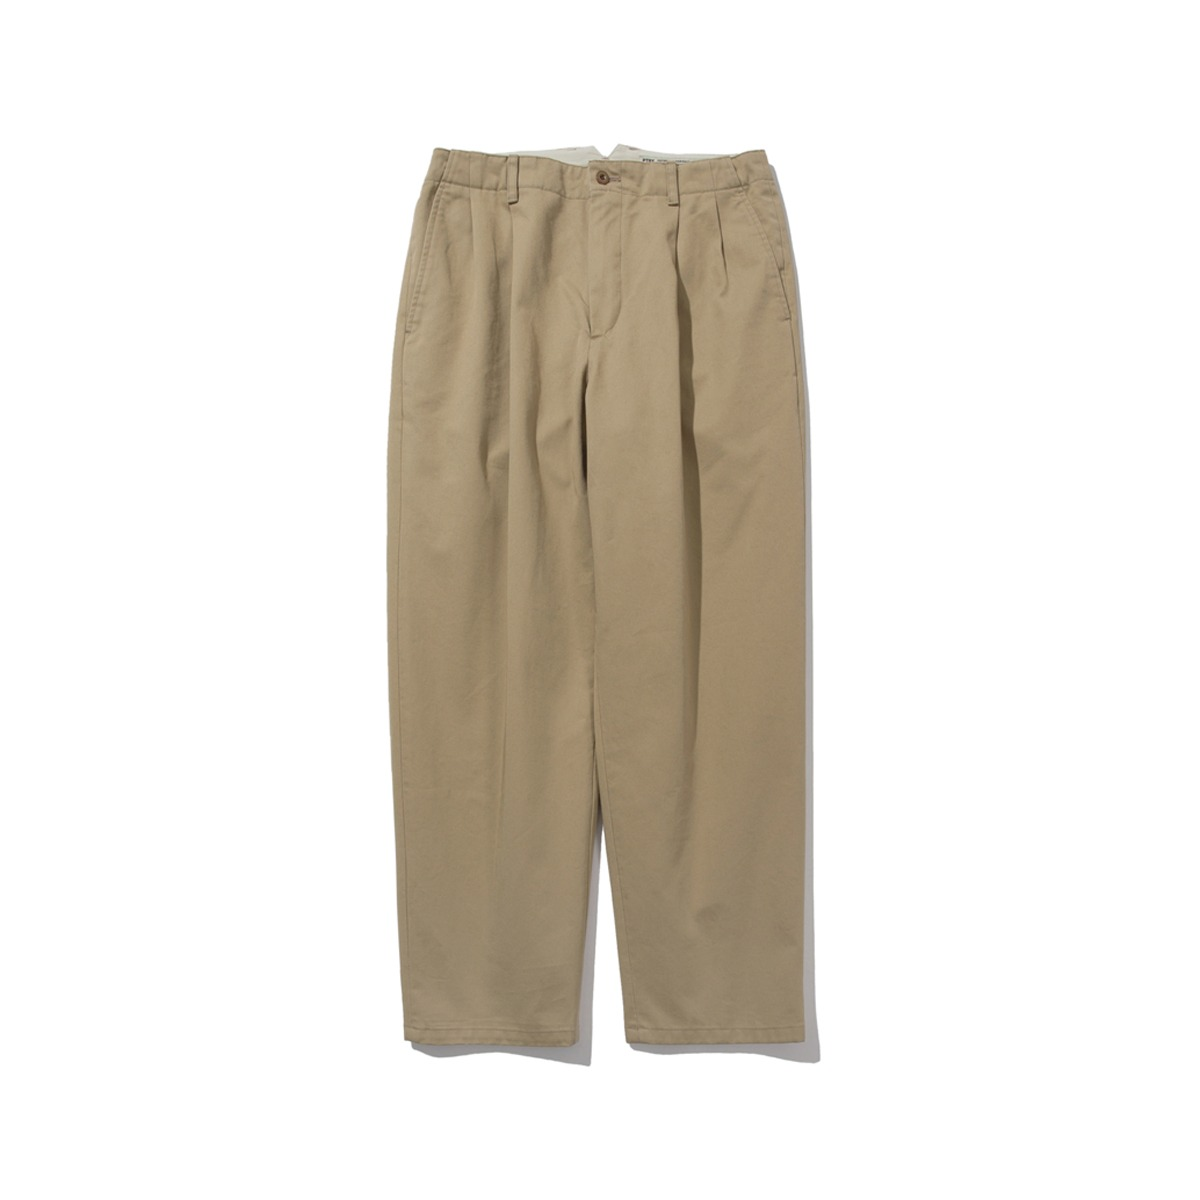 [POTTERY] TWO PLEATED WIDE CHINO PANTS 'CHINO BEIGE'